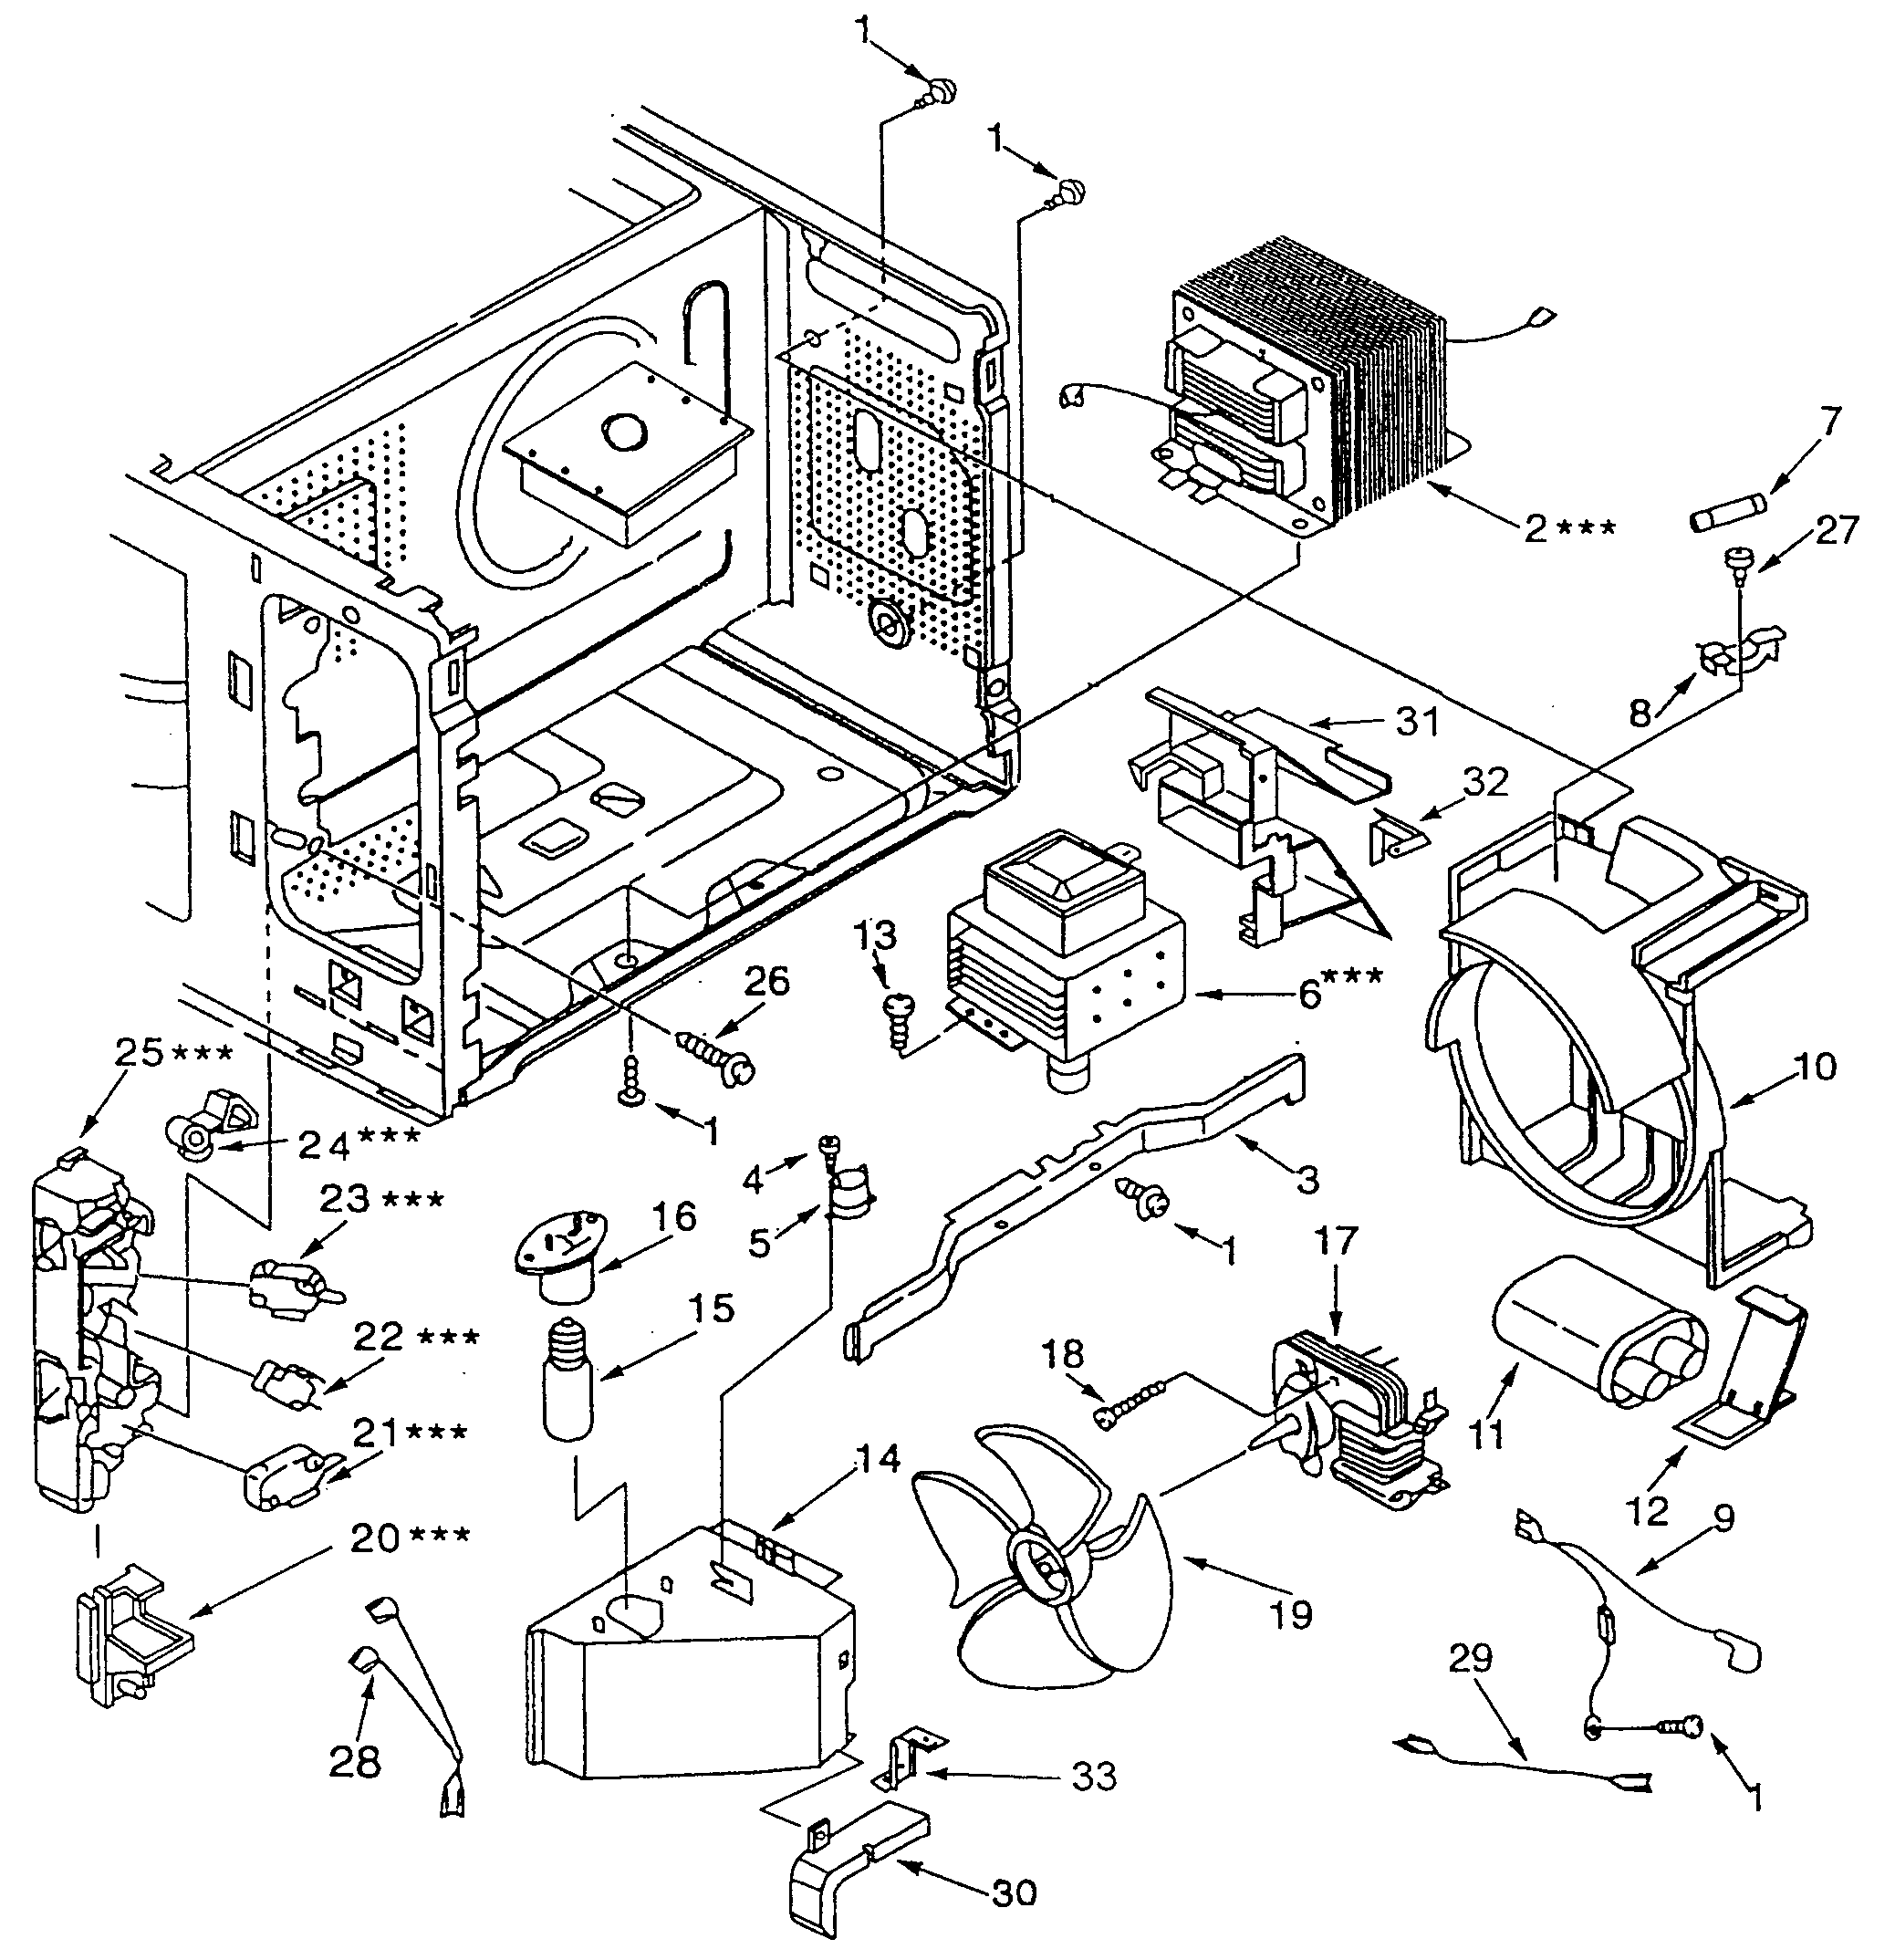 Kenmore 56561582010 switchs/microwave parts diagram